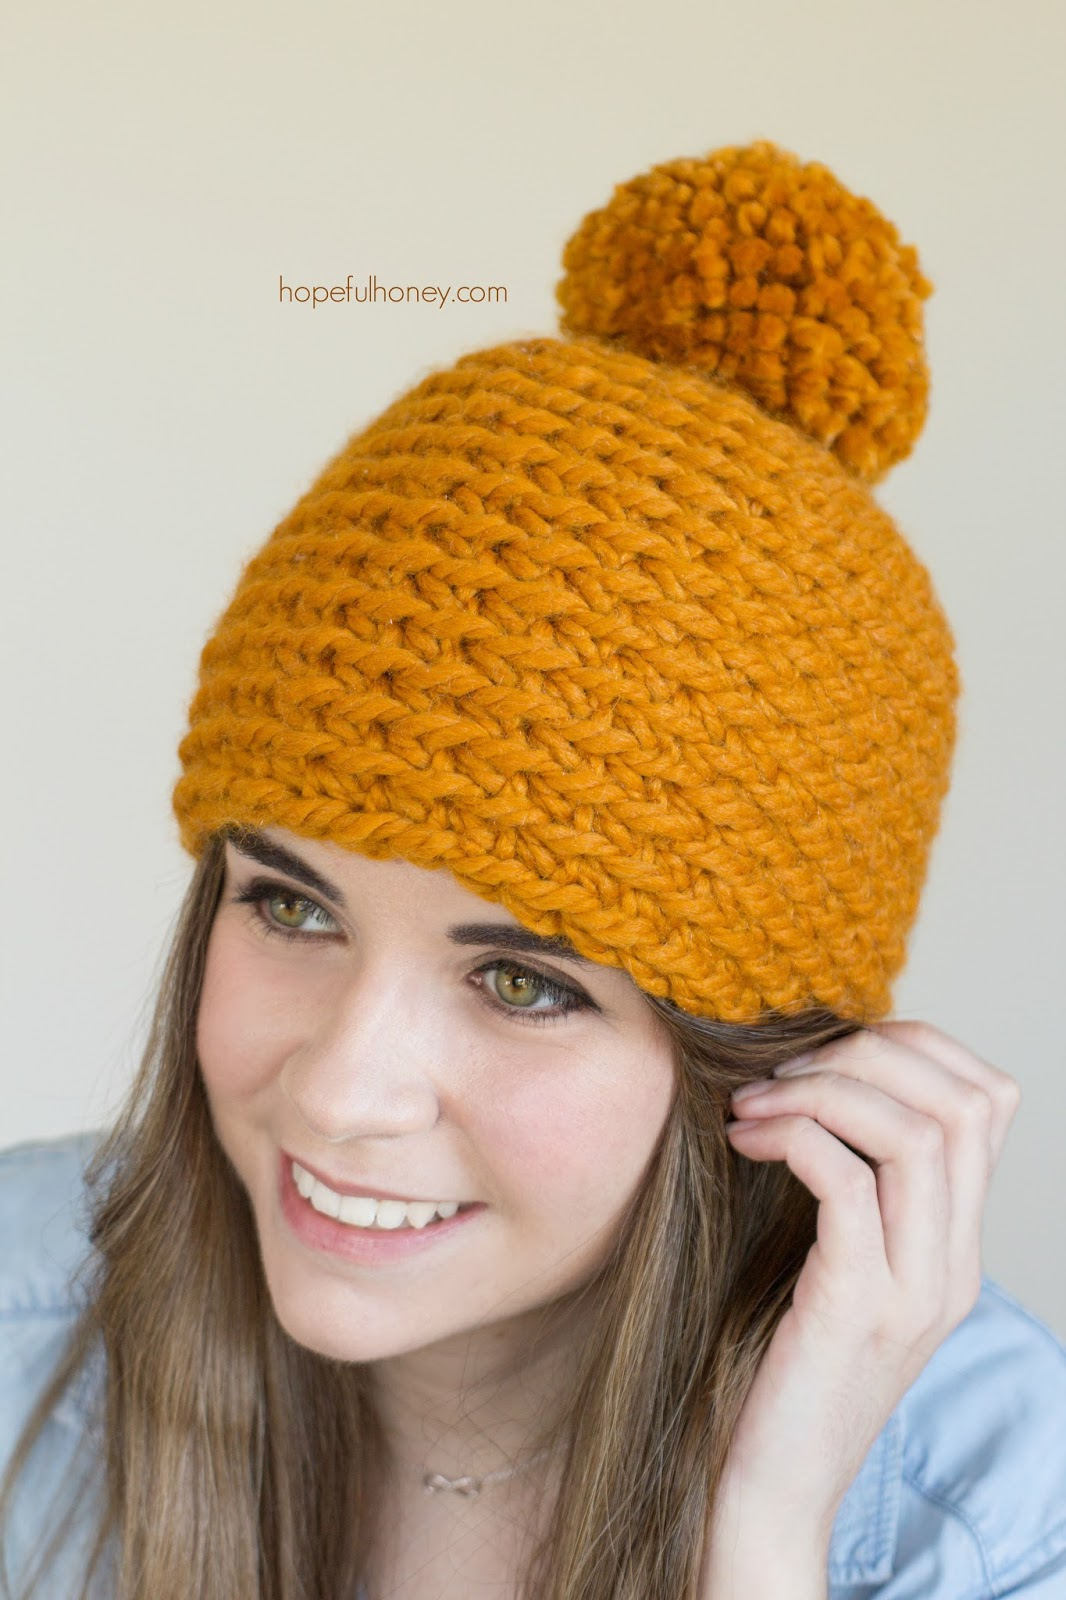 Crochet Pattern Hat Beanie : Hopeful Honey Craft, Crochet, Create: Toffee Apple ...